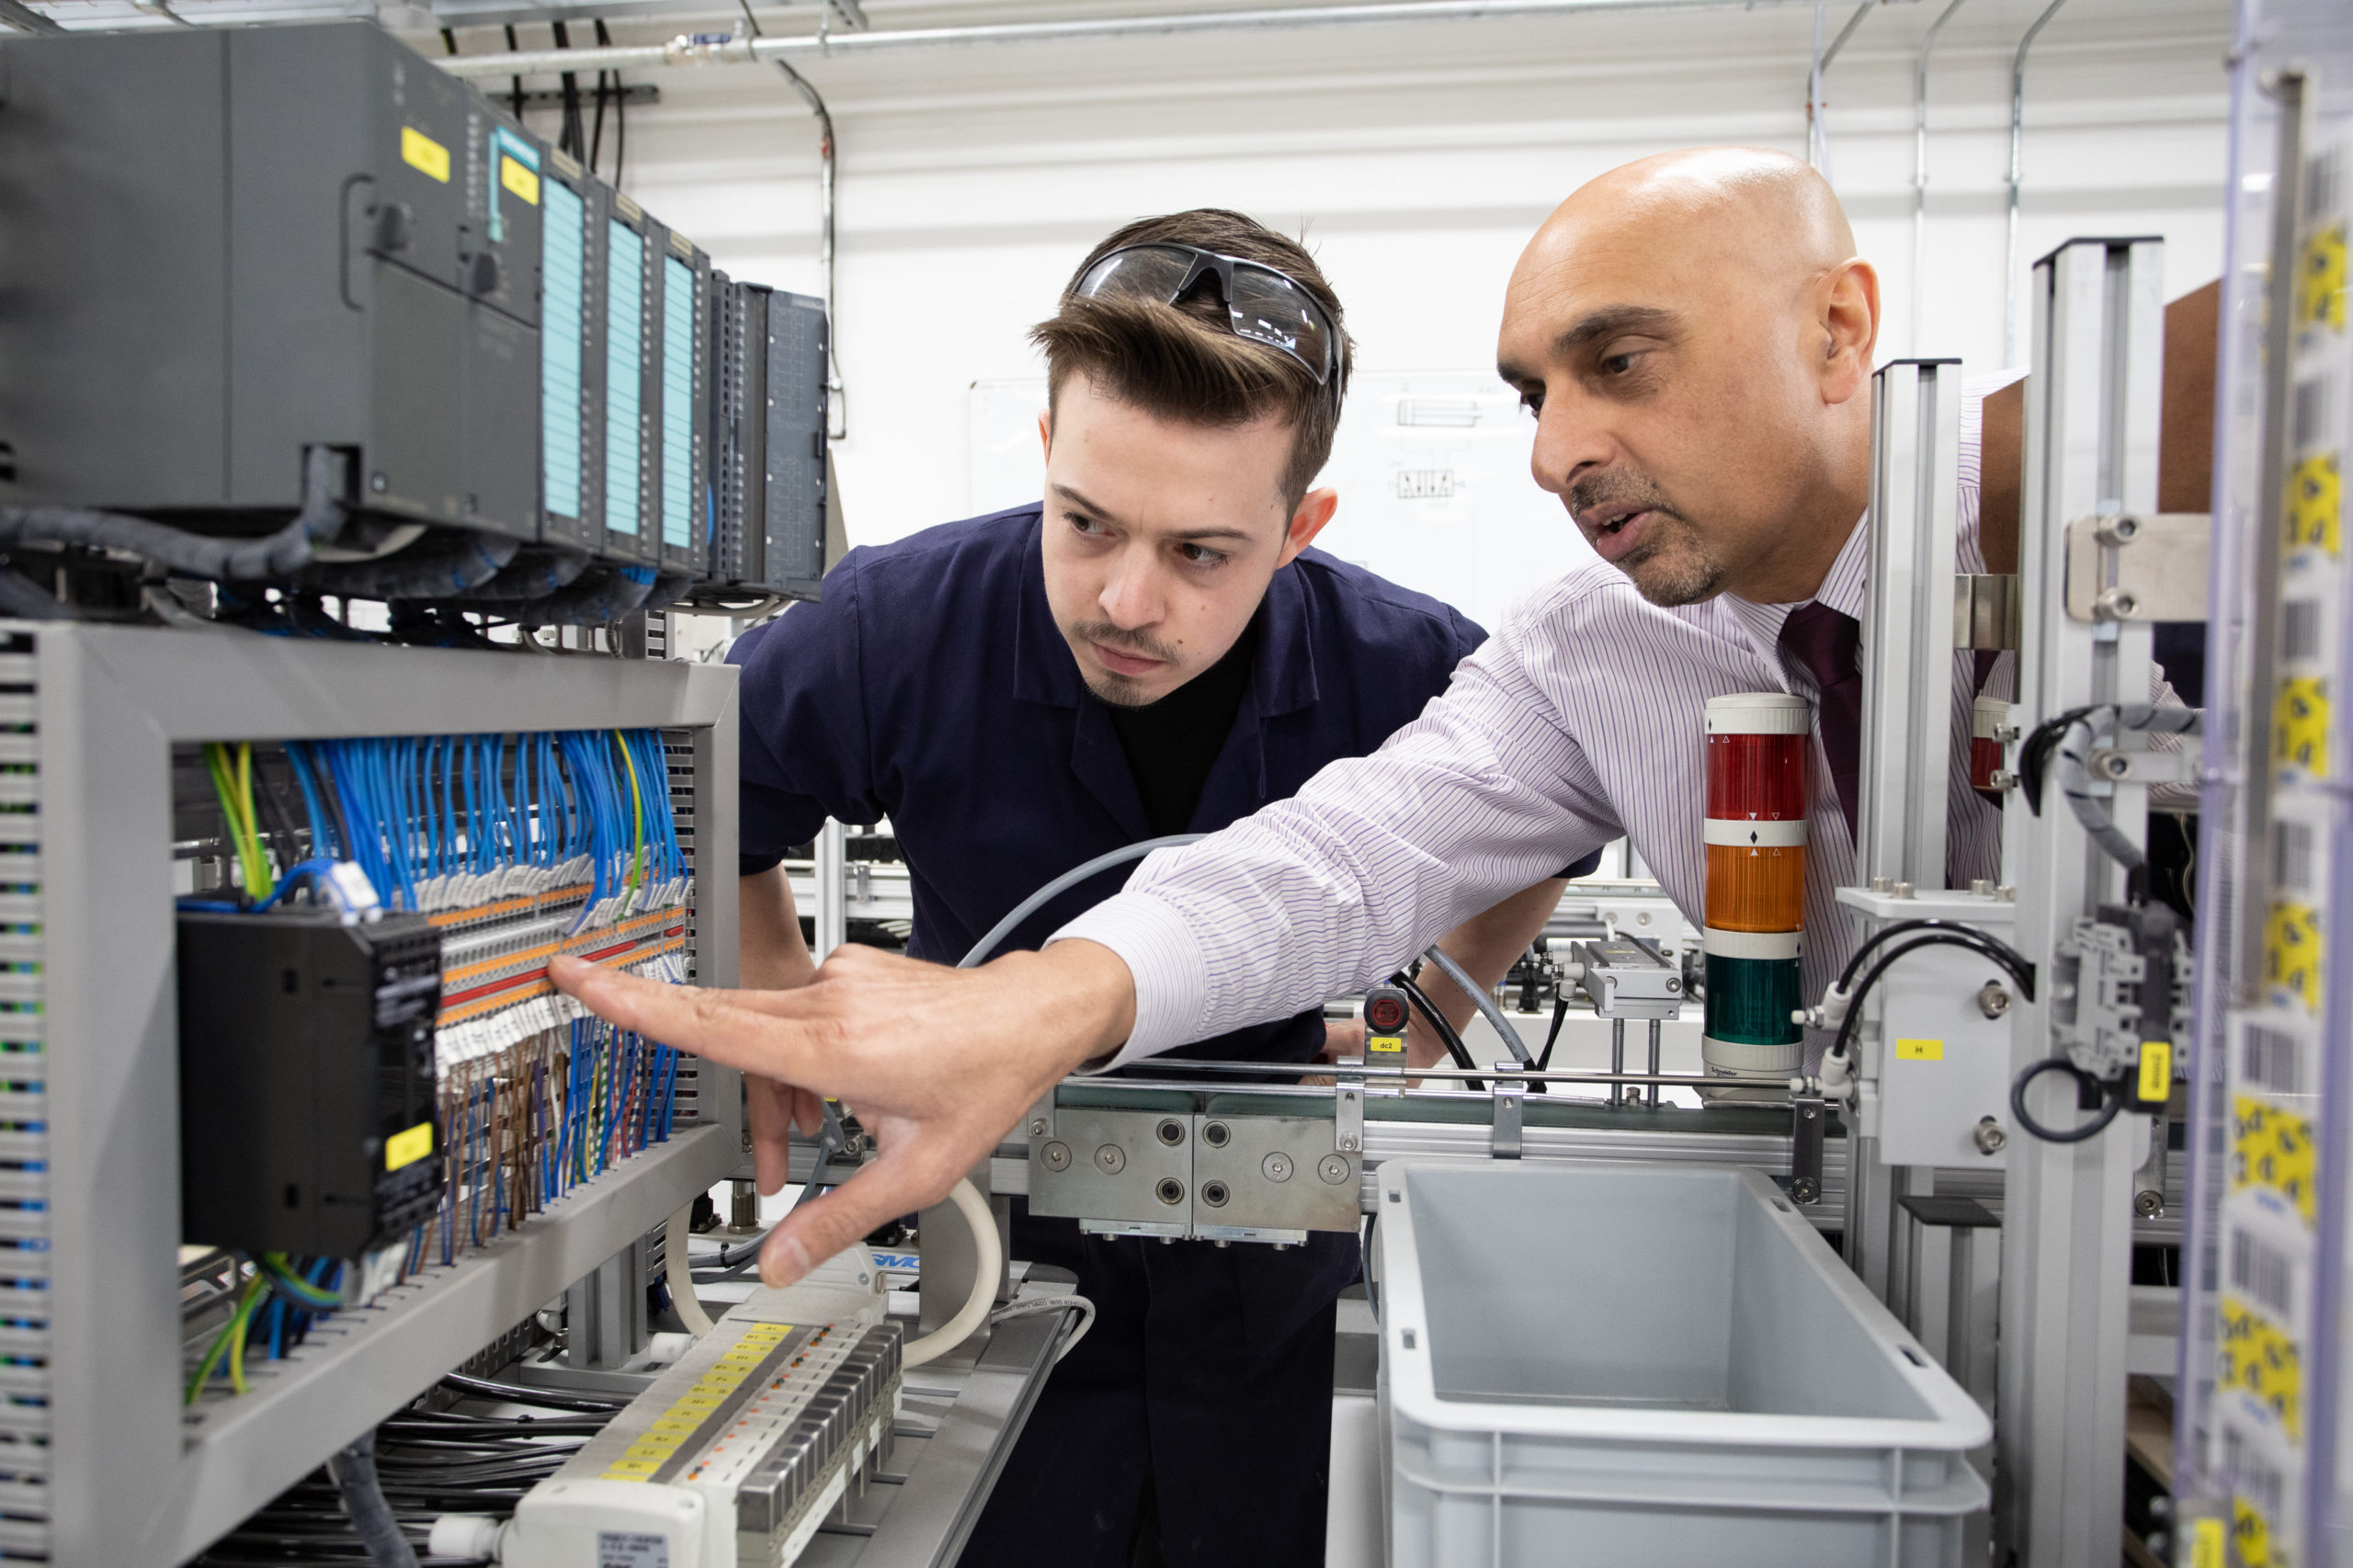 Male mentor speaking to Food and Drink Engineering Maintenance Technician apprentice about Automation fault finding